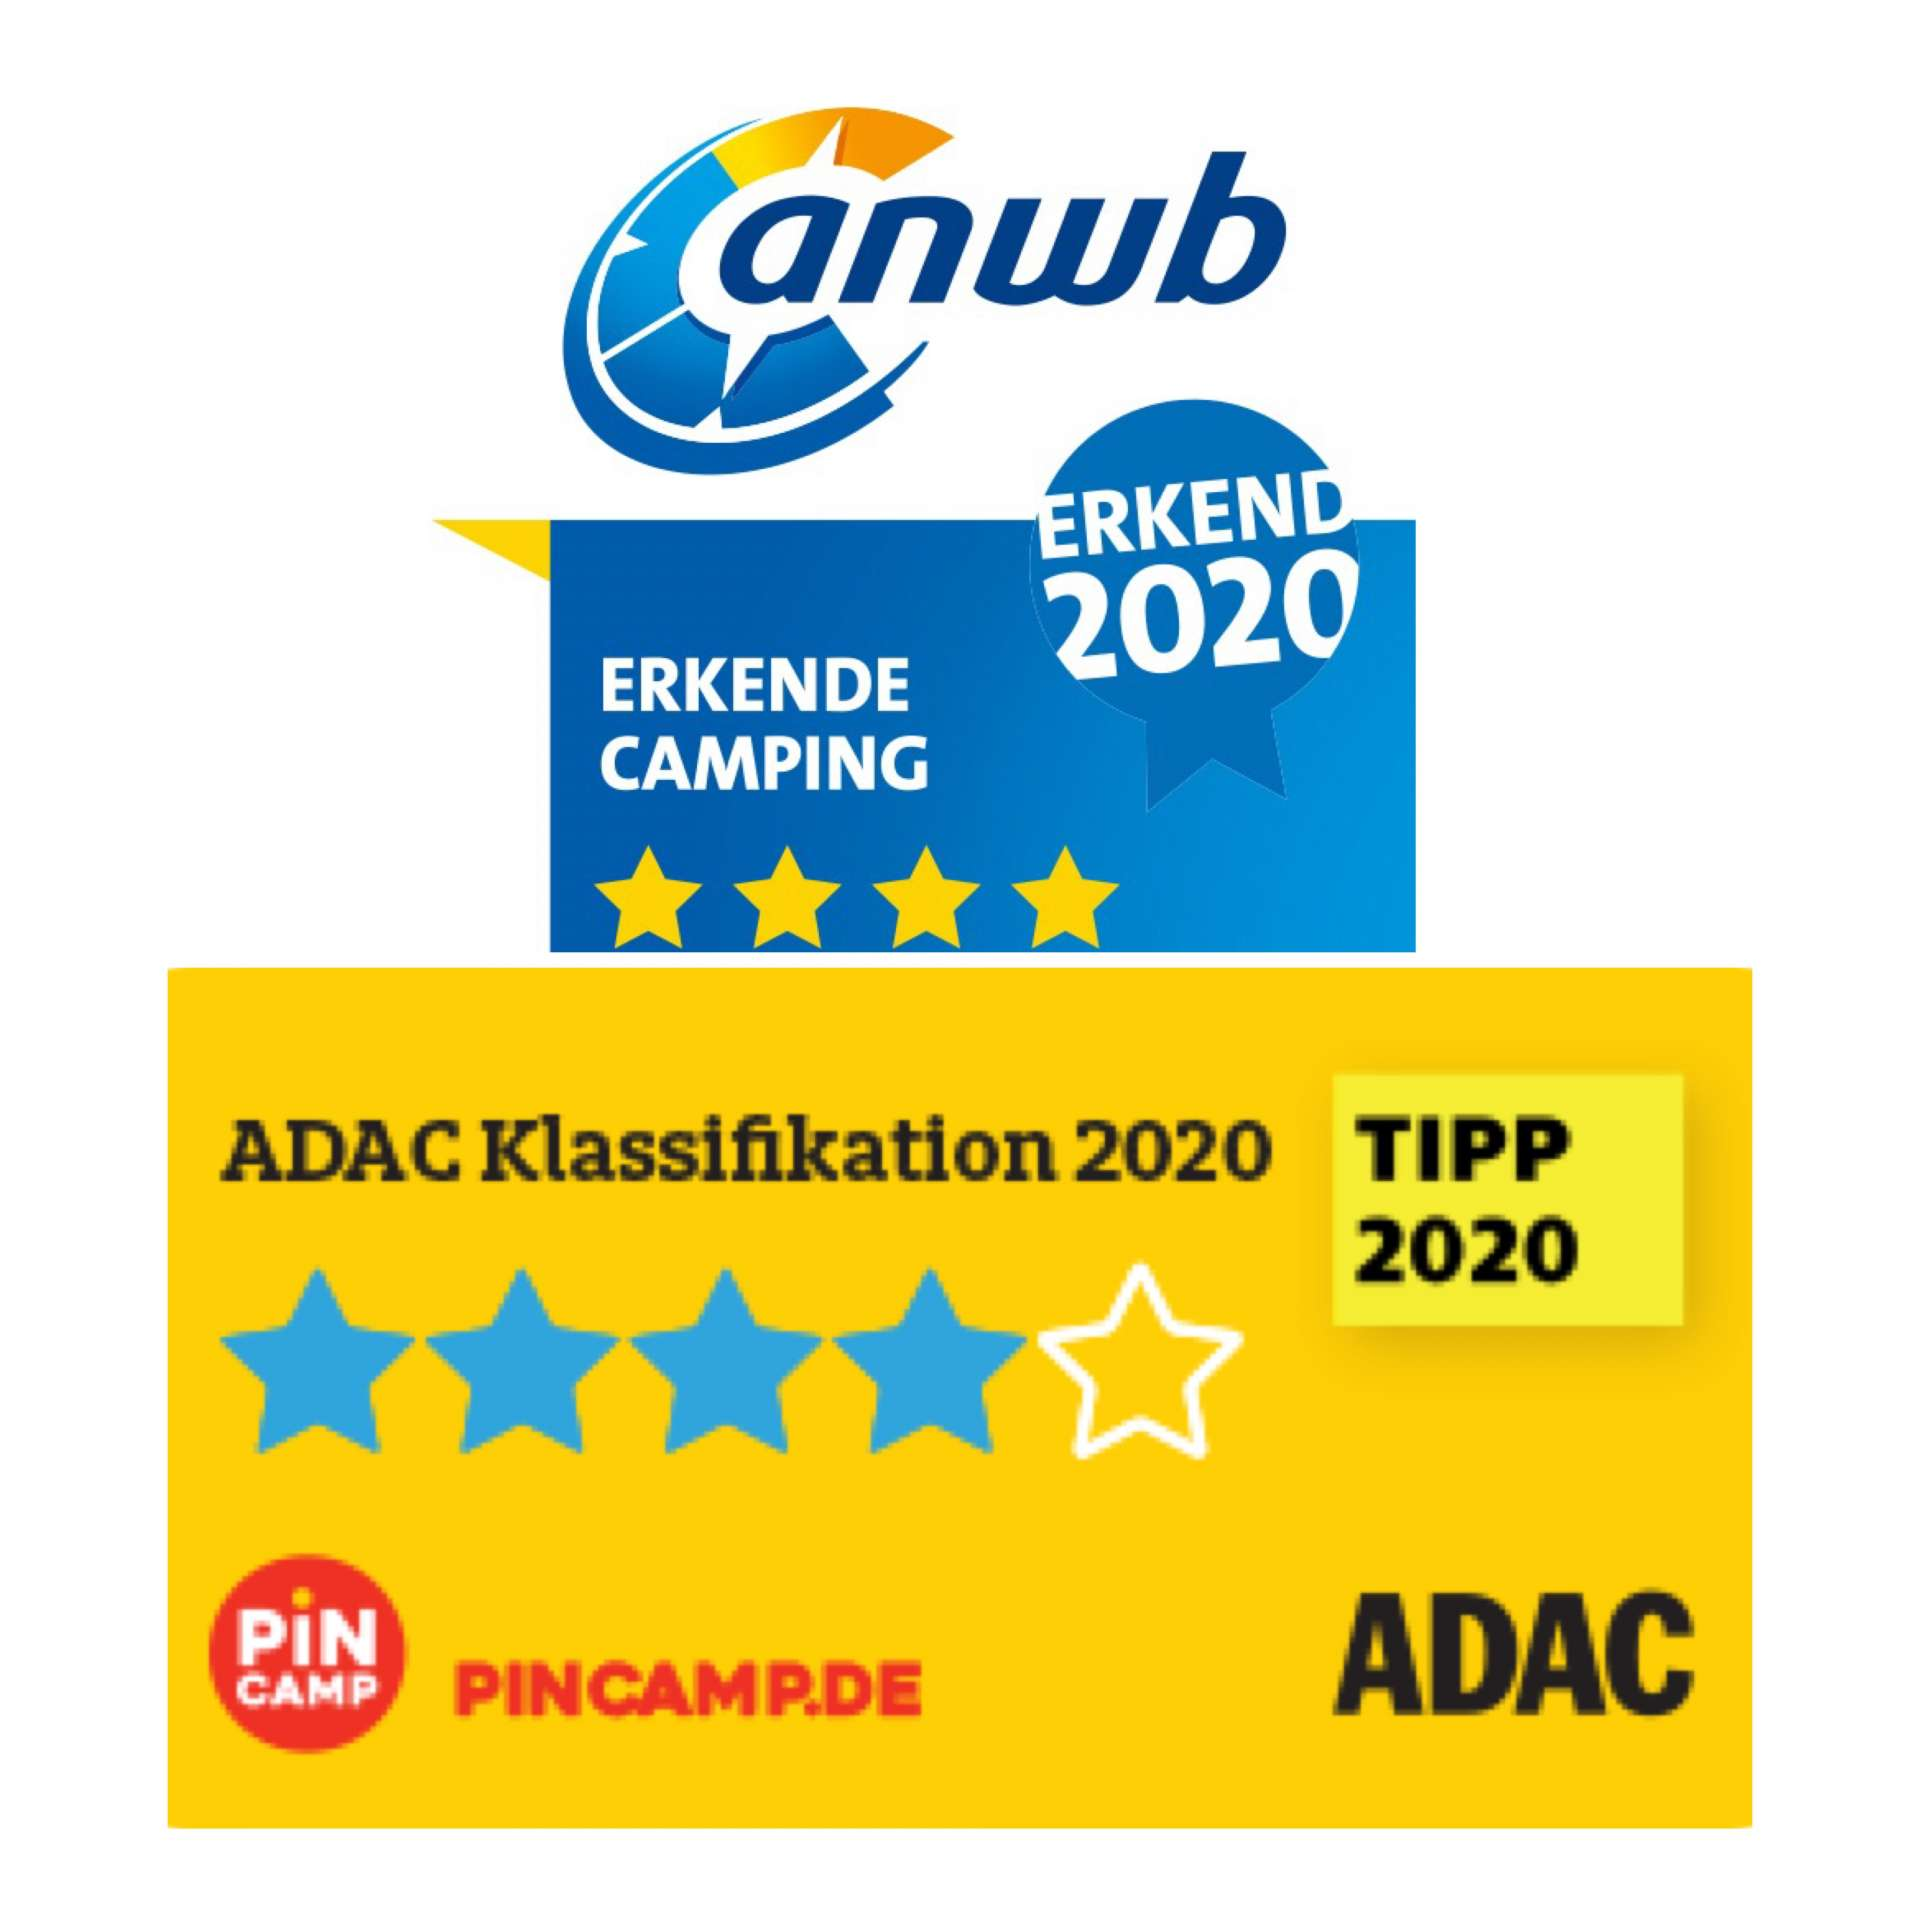 ADAC and ANWB gave us 4 stars and a TIP!